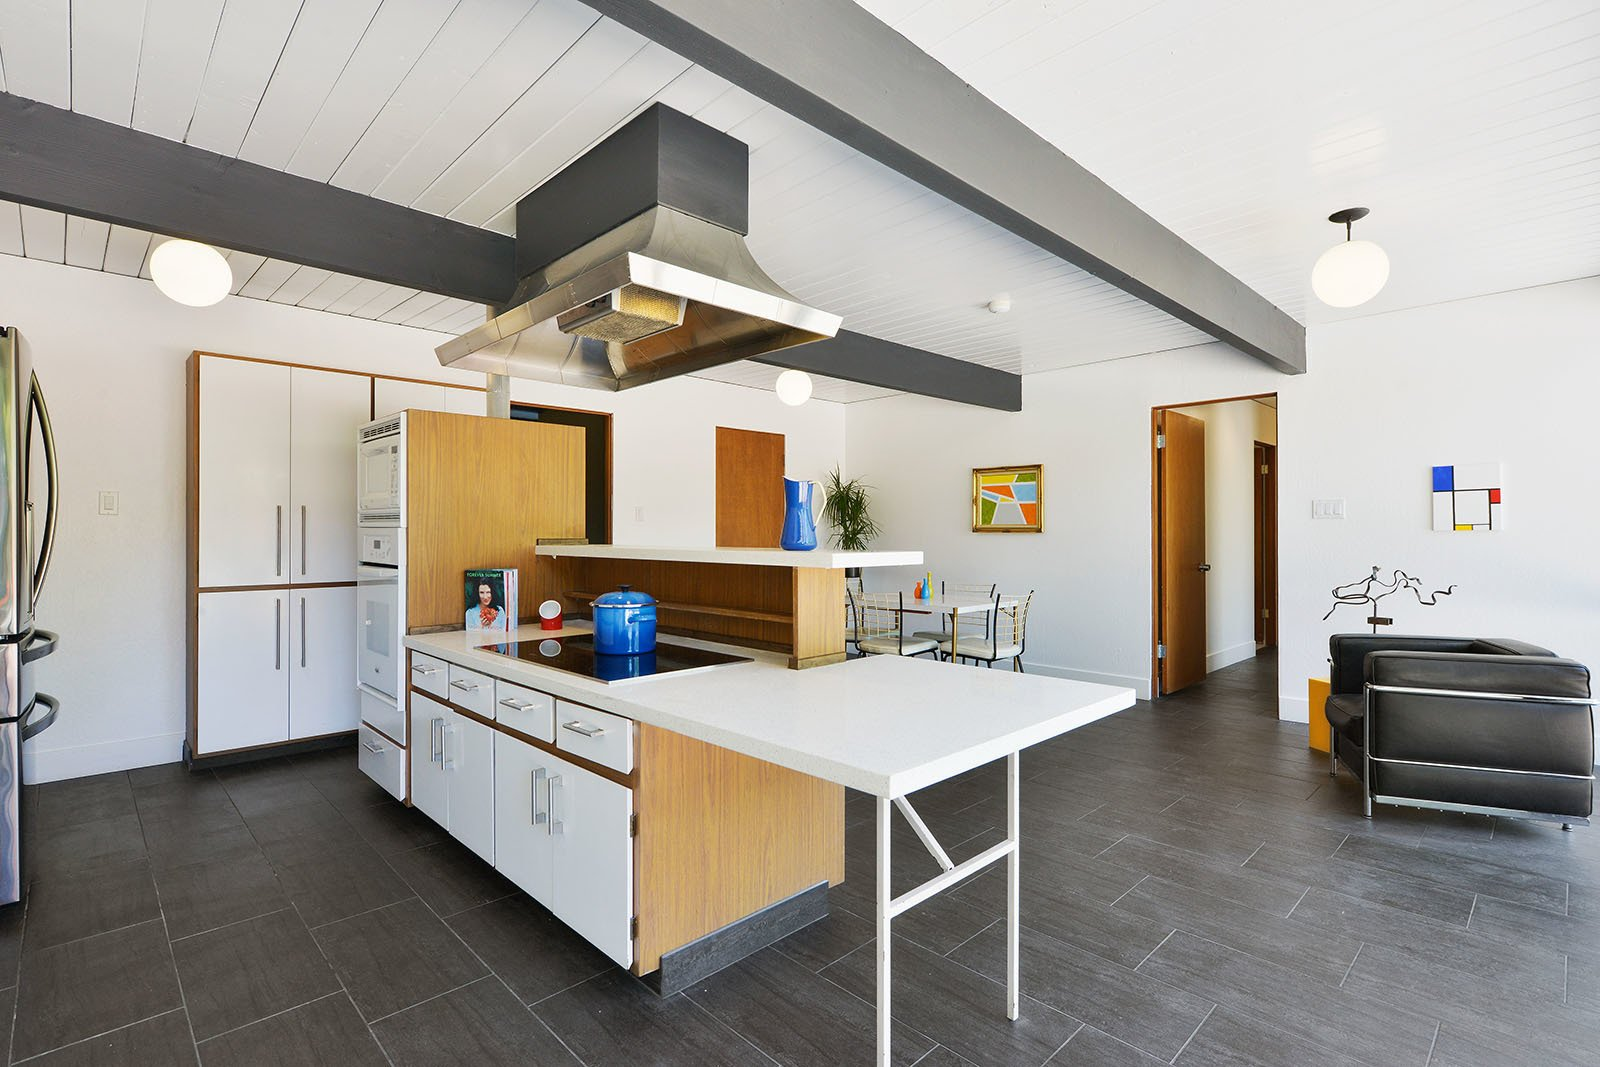 Kitchen  Photo 9 of 15 in An Enormous Bay Area Eichler Asks $1.45M